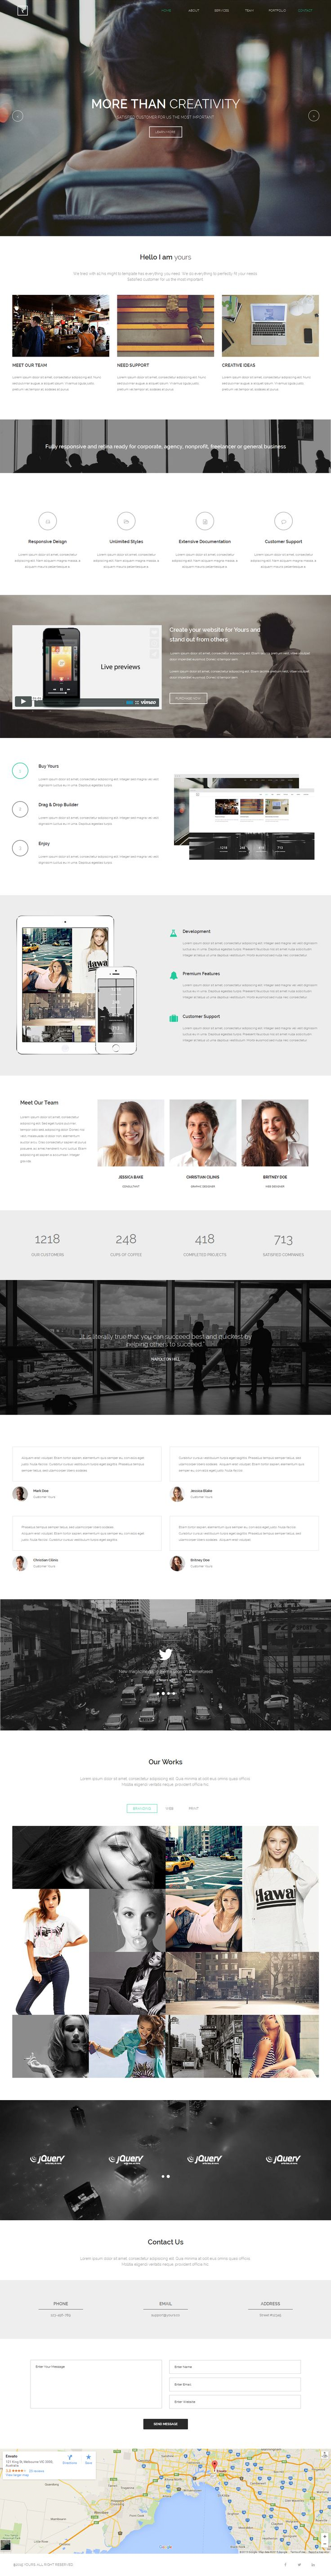 Yours is a Multipurpose Parallax scrolling One Page Template. To edit this template with #Adobe #Muse is very easy. You can change colors, texts or replace the images in a few minutes. Drag & Drop Content.